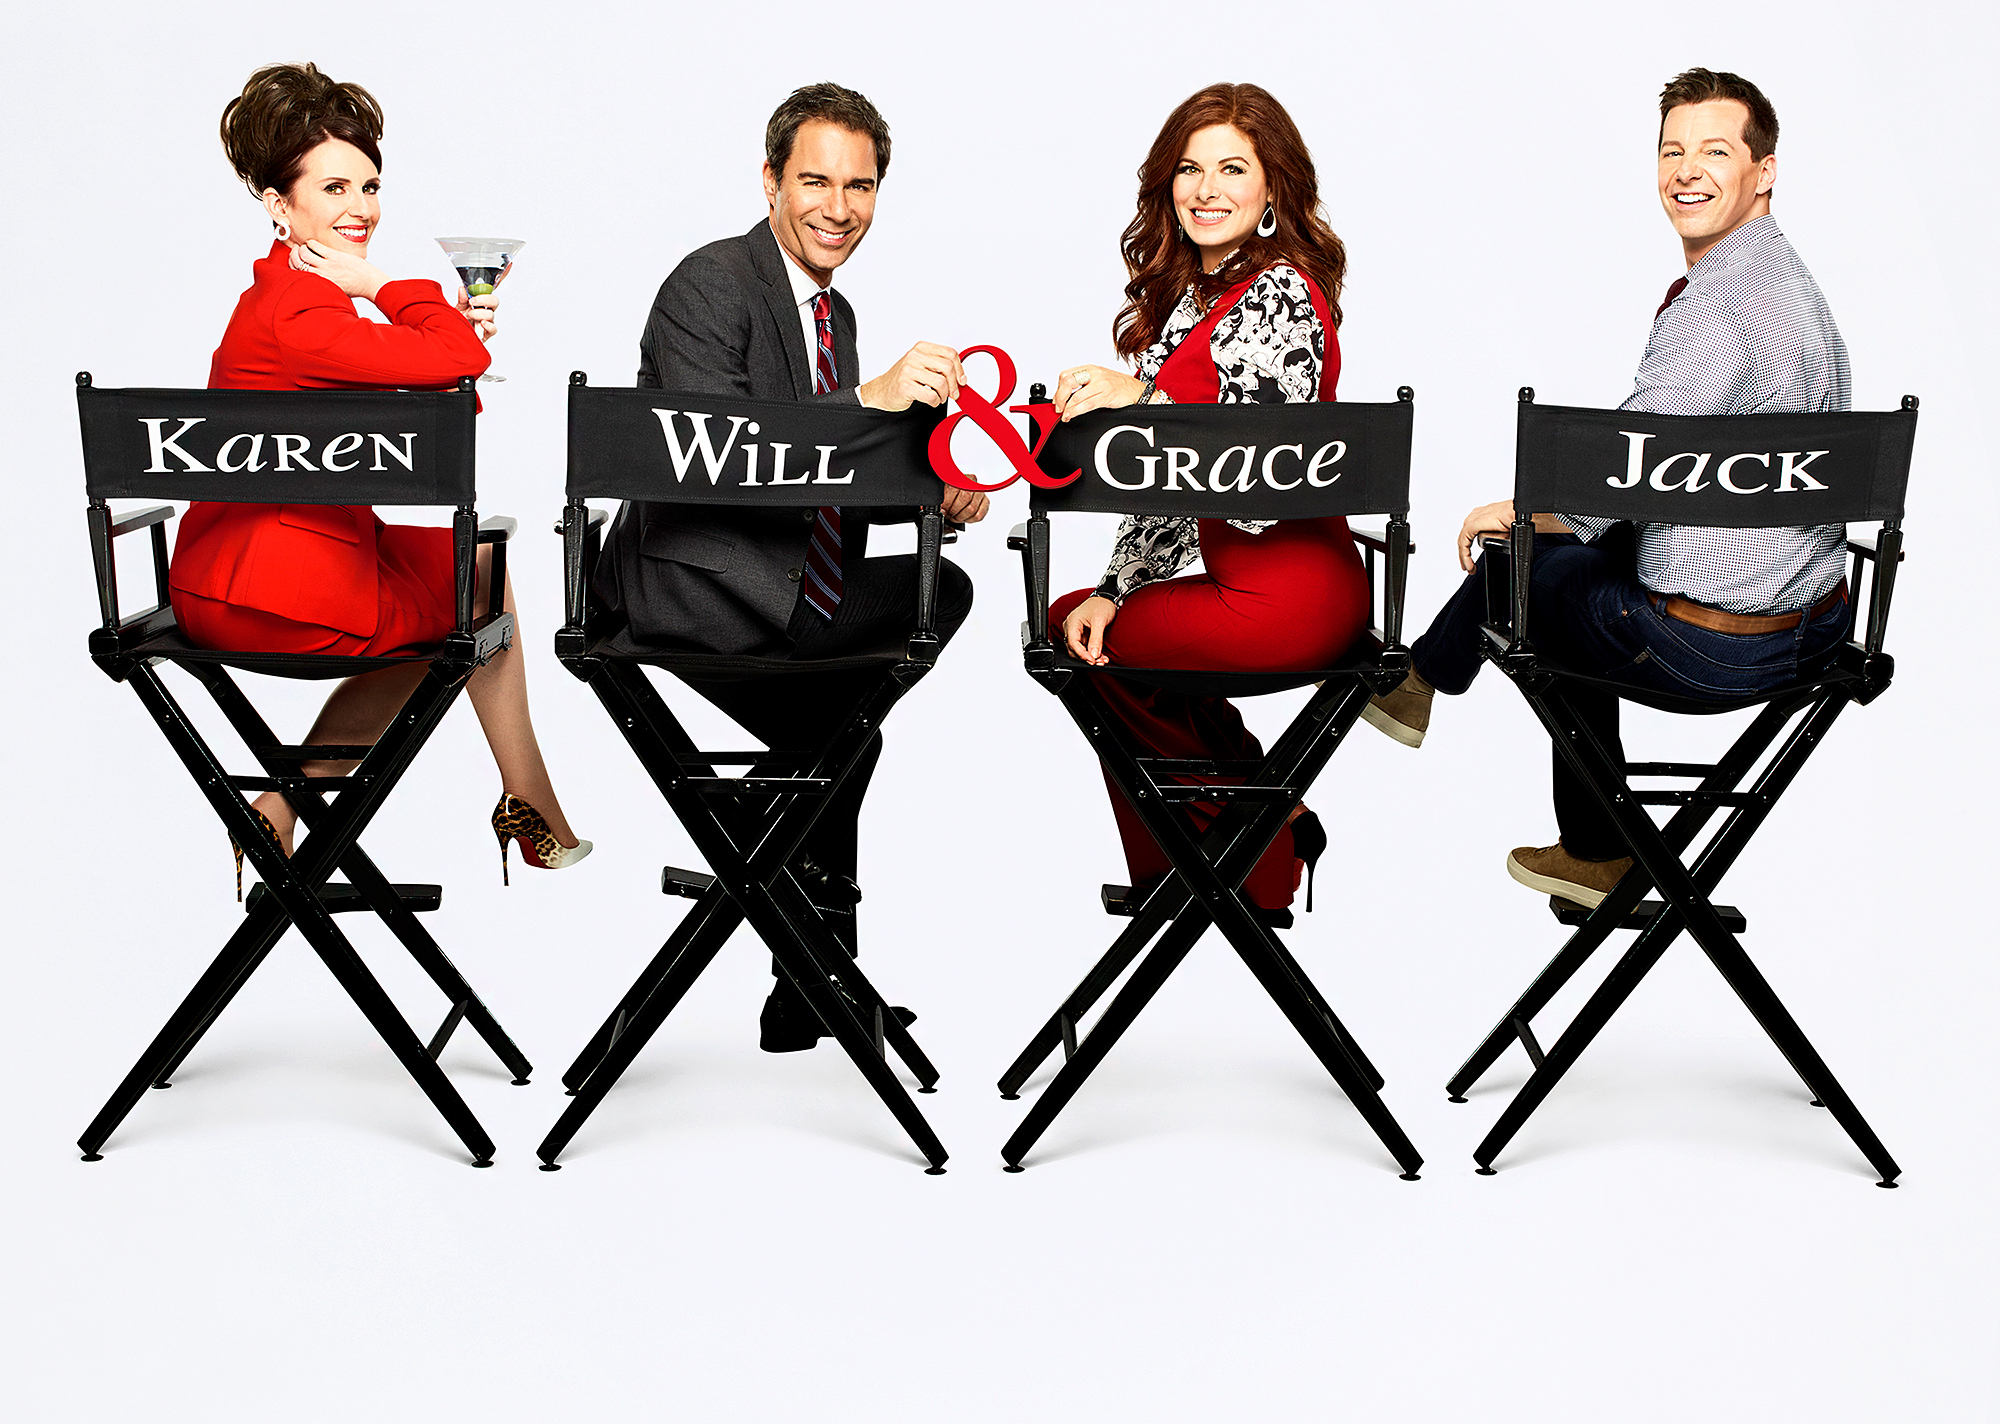 Will & Grace Megan Mullally, Eric McCormack, Debra Messing and Sean Hayes